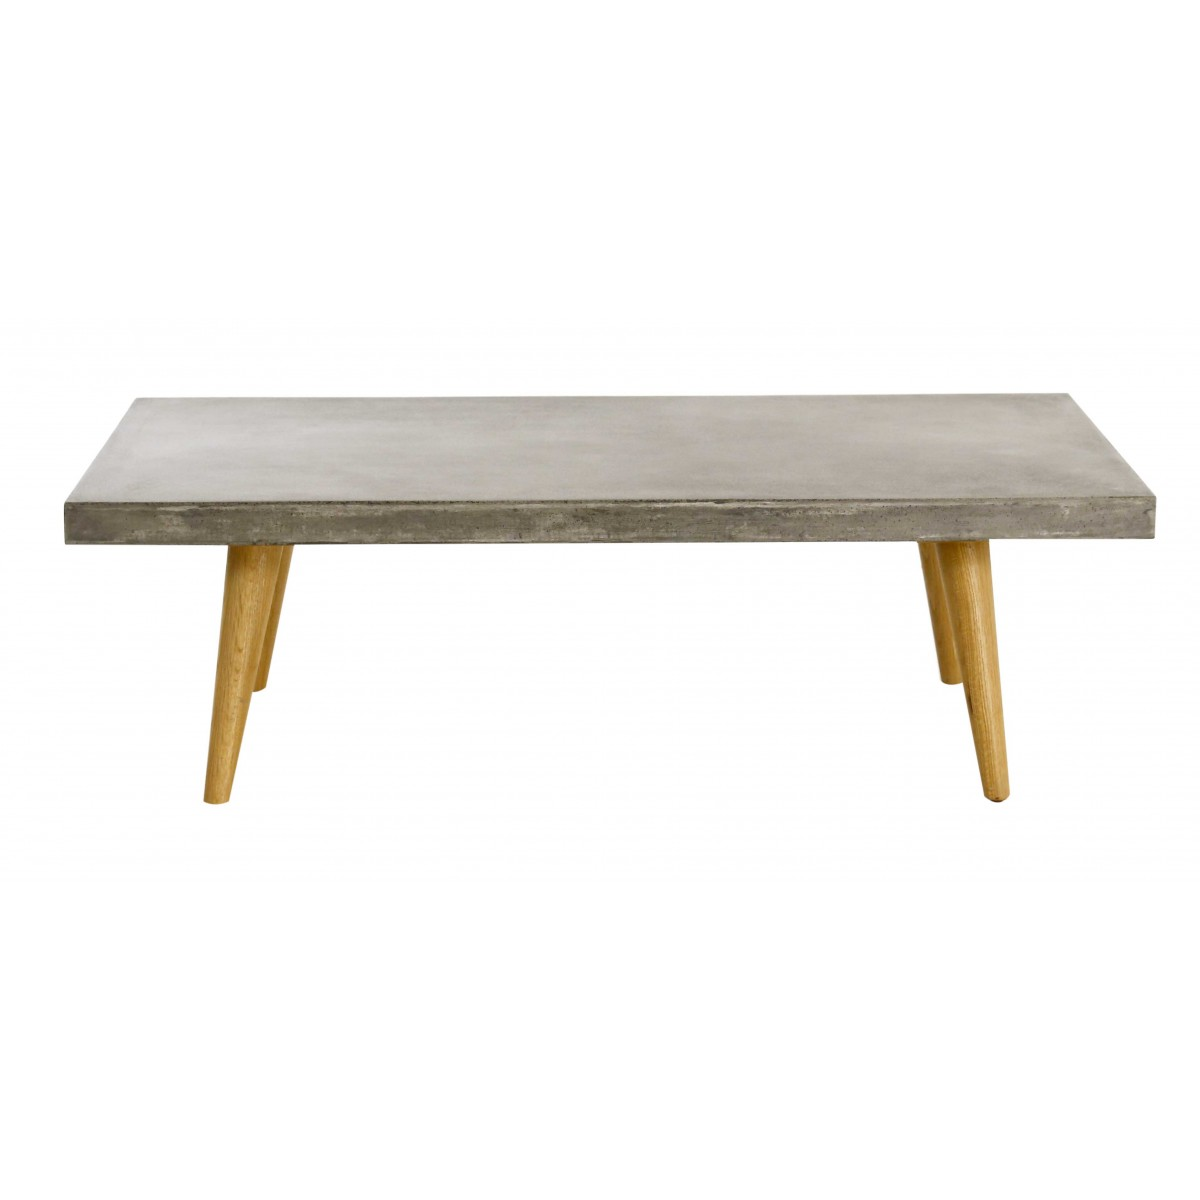 Table Basse En Beton Table Basse De Salon Design Et Multi Styles Zago Store